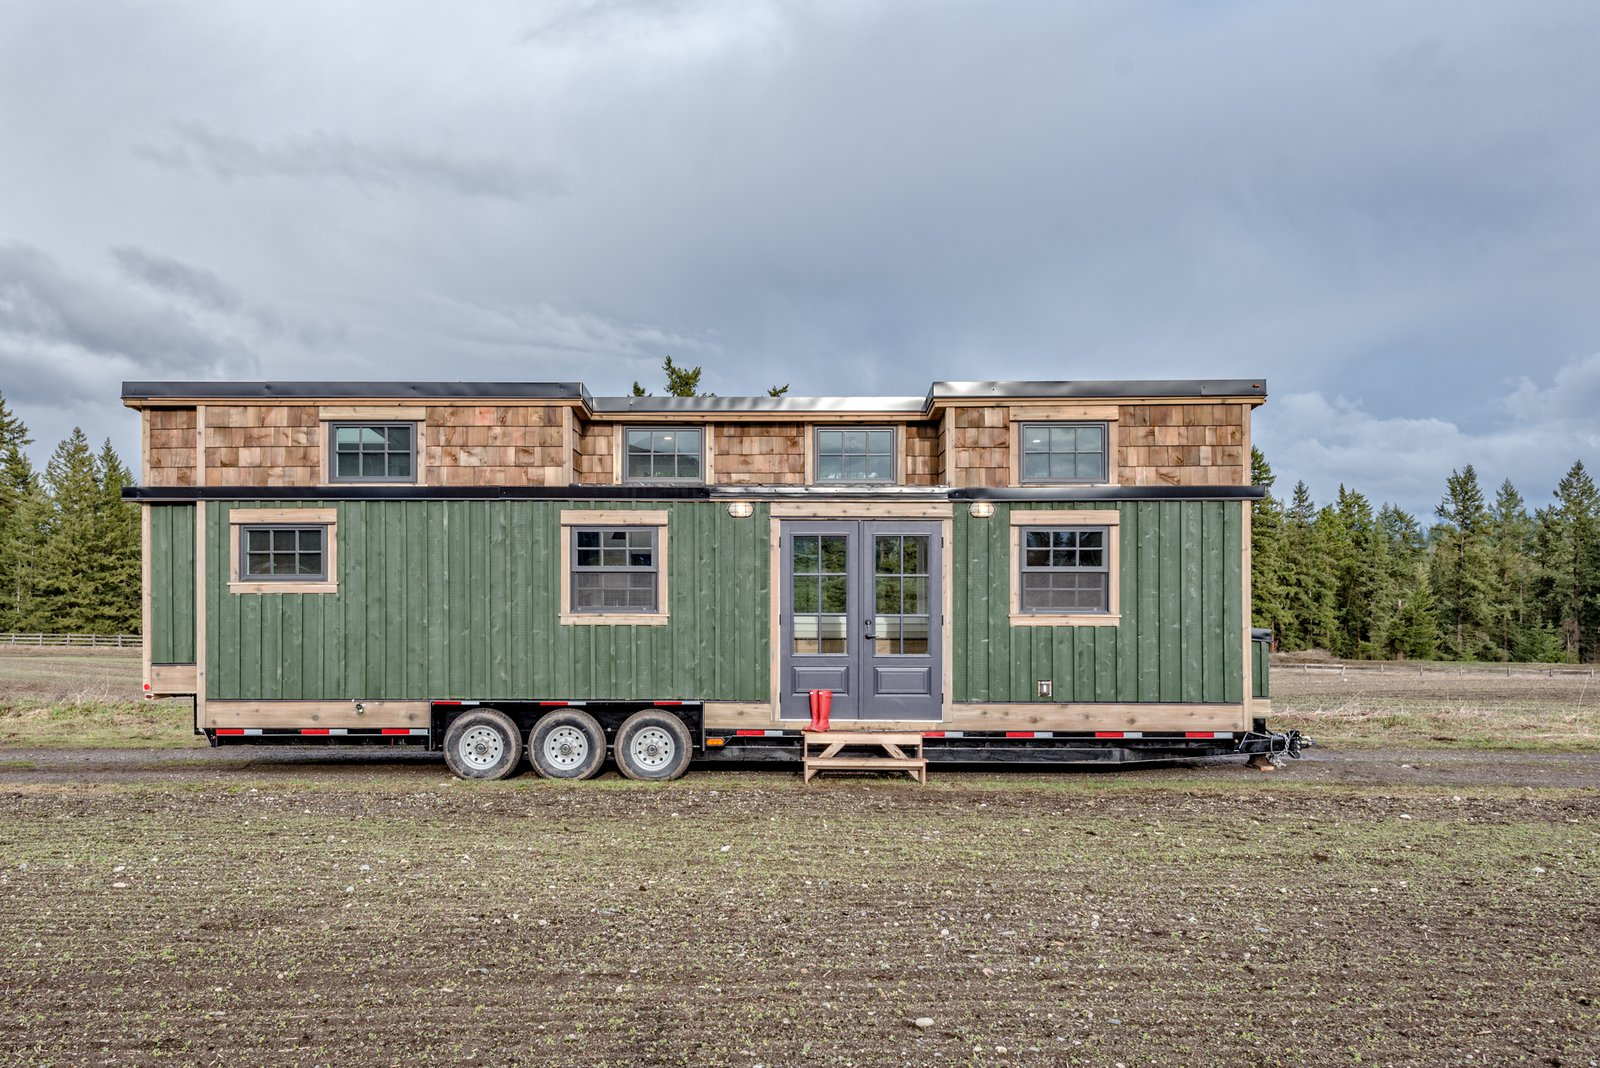 Exterior, Tiny Home, Small Home, Wood, Metal, and Flat  Best Exterior Metal Wood Flat Tiny Home Photos from This Canadian Tiny Home Beams a Rustic, West Coast Vibe